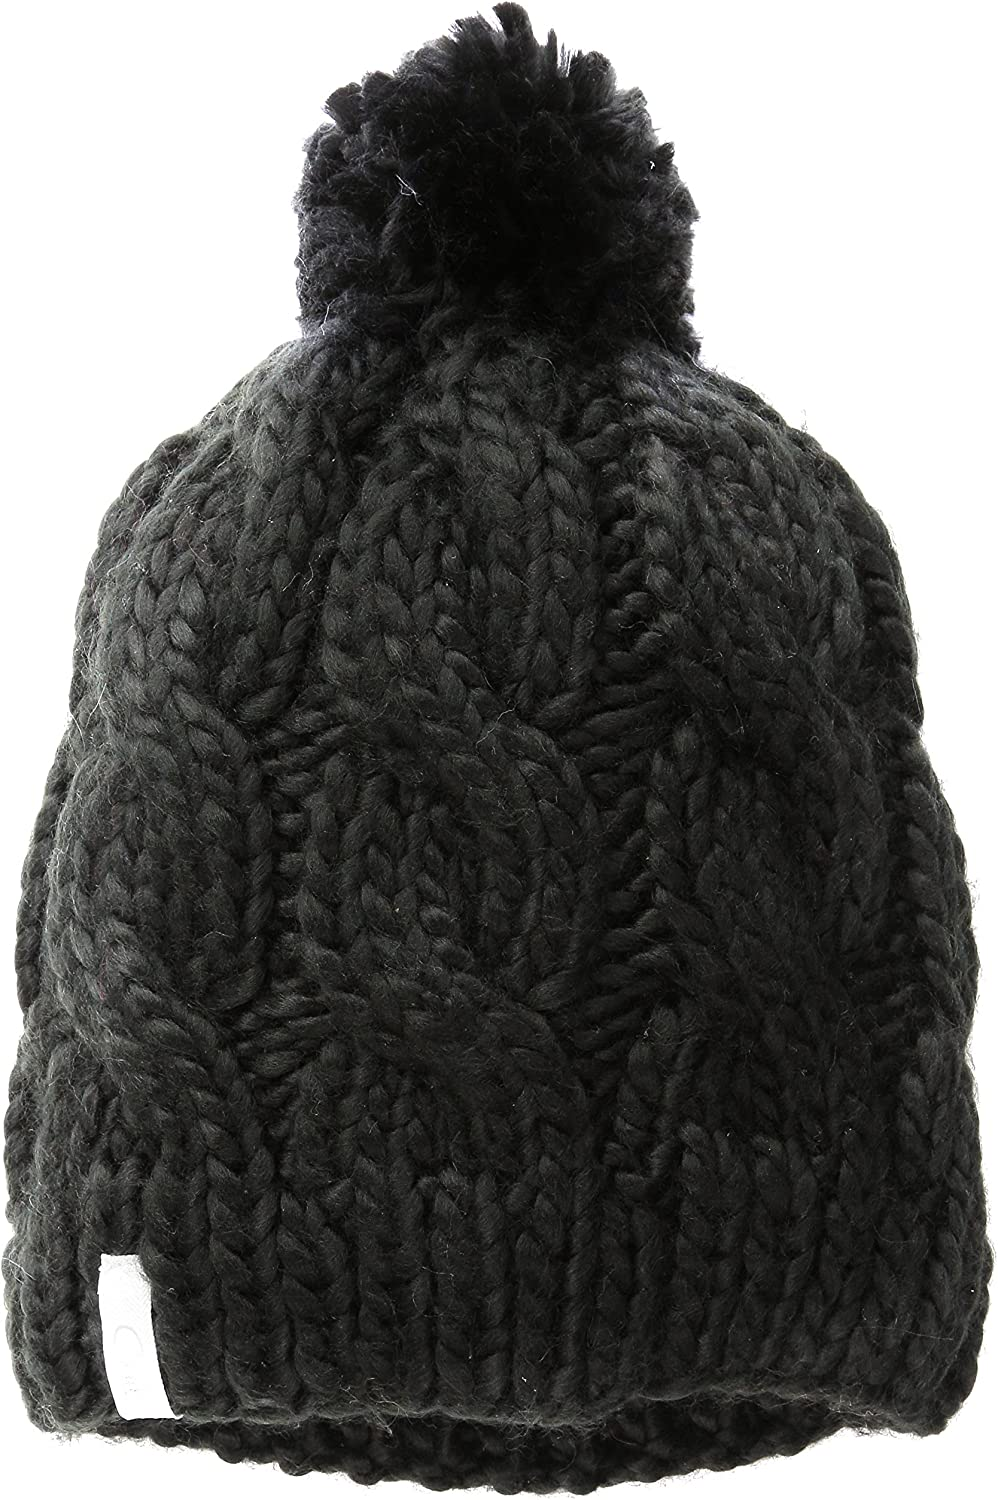 Coal Women's The Rosa Chunky Cable Clearance SALE! Limited time! A surprise price is realized Pattern Beanie Pom